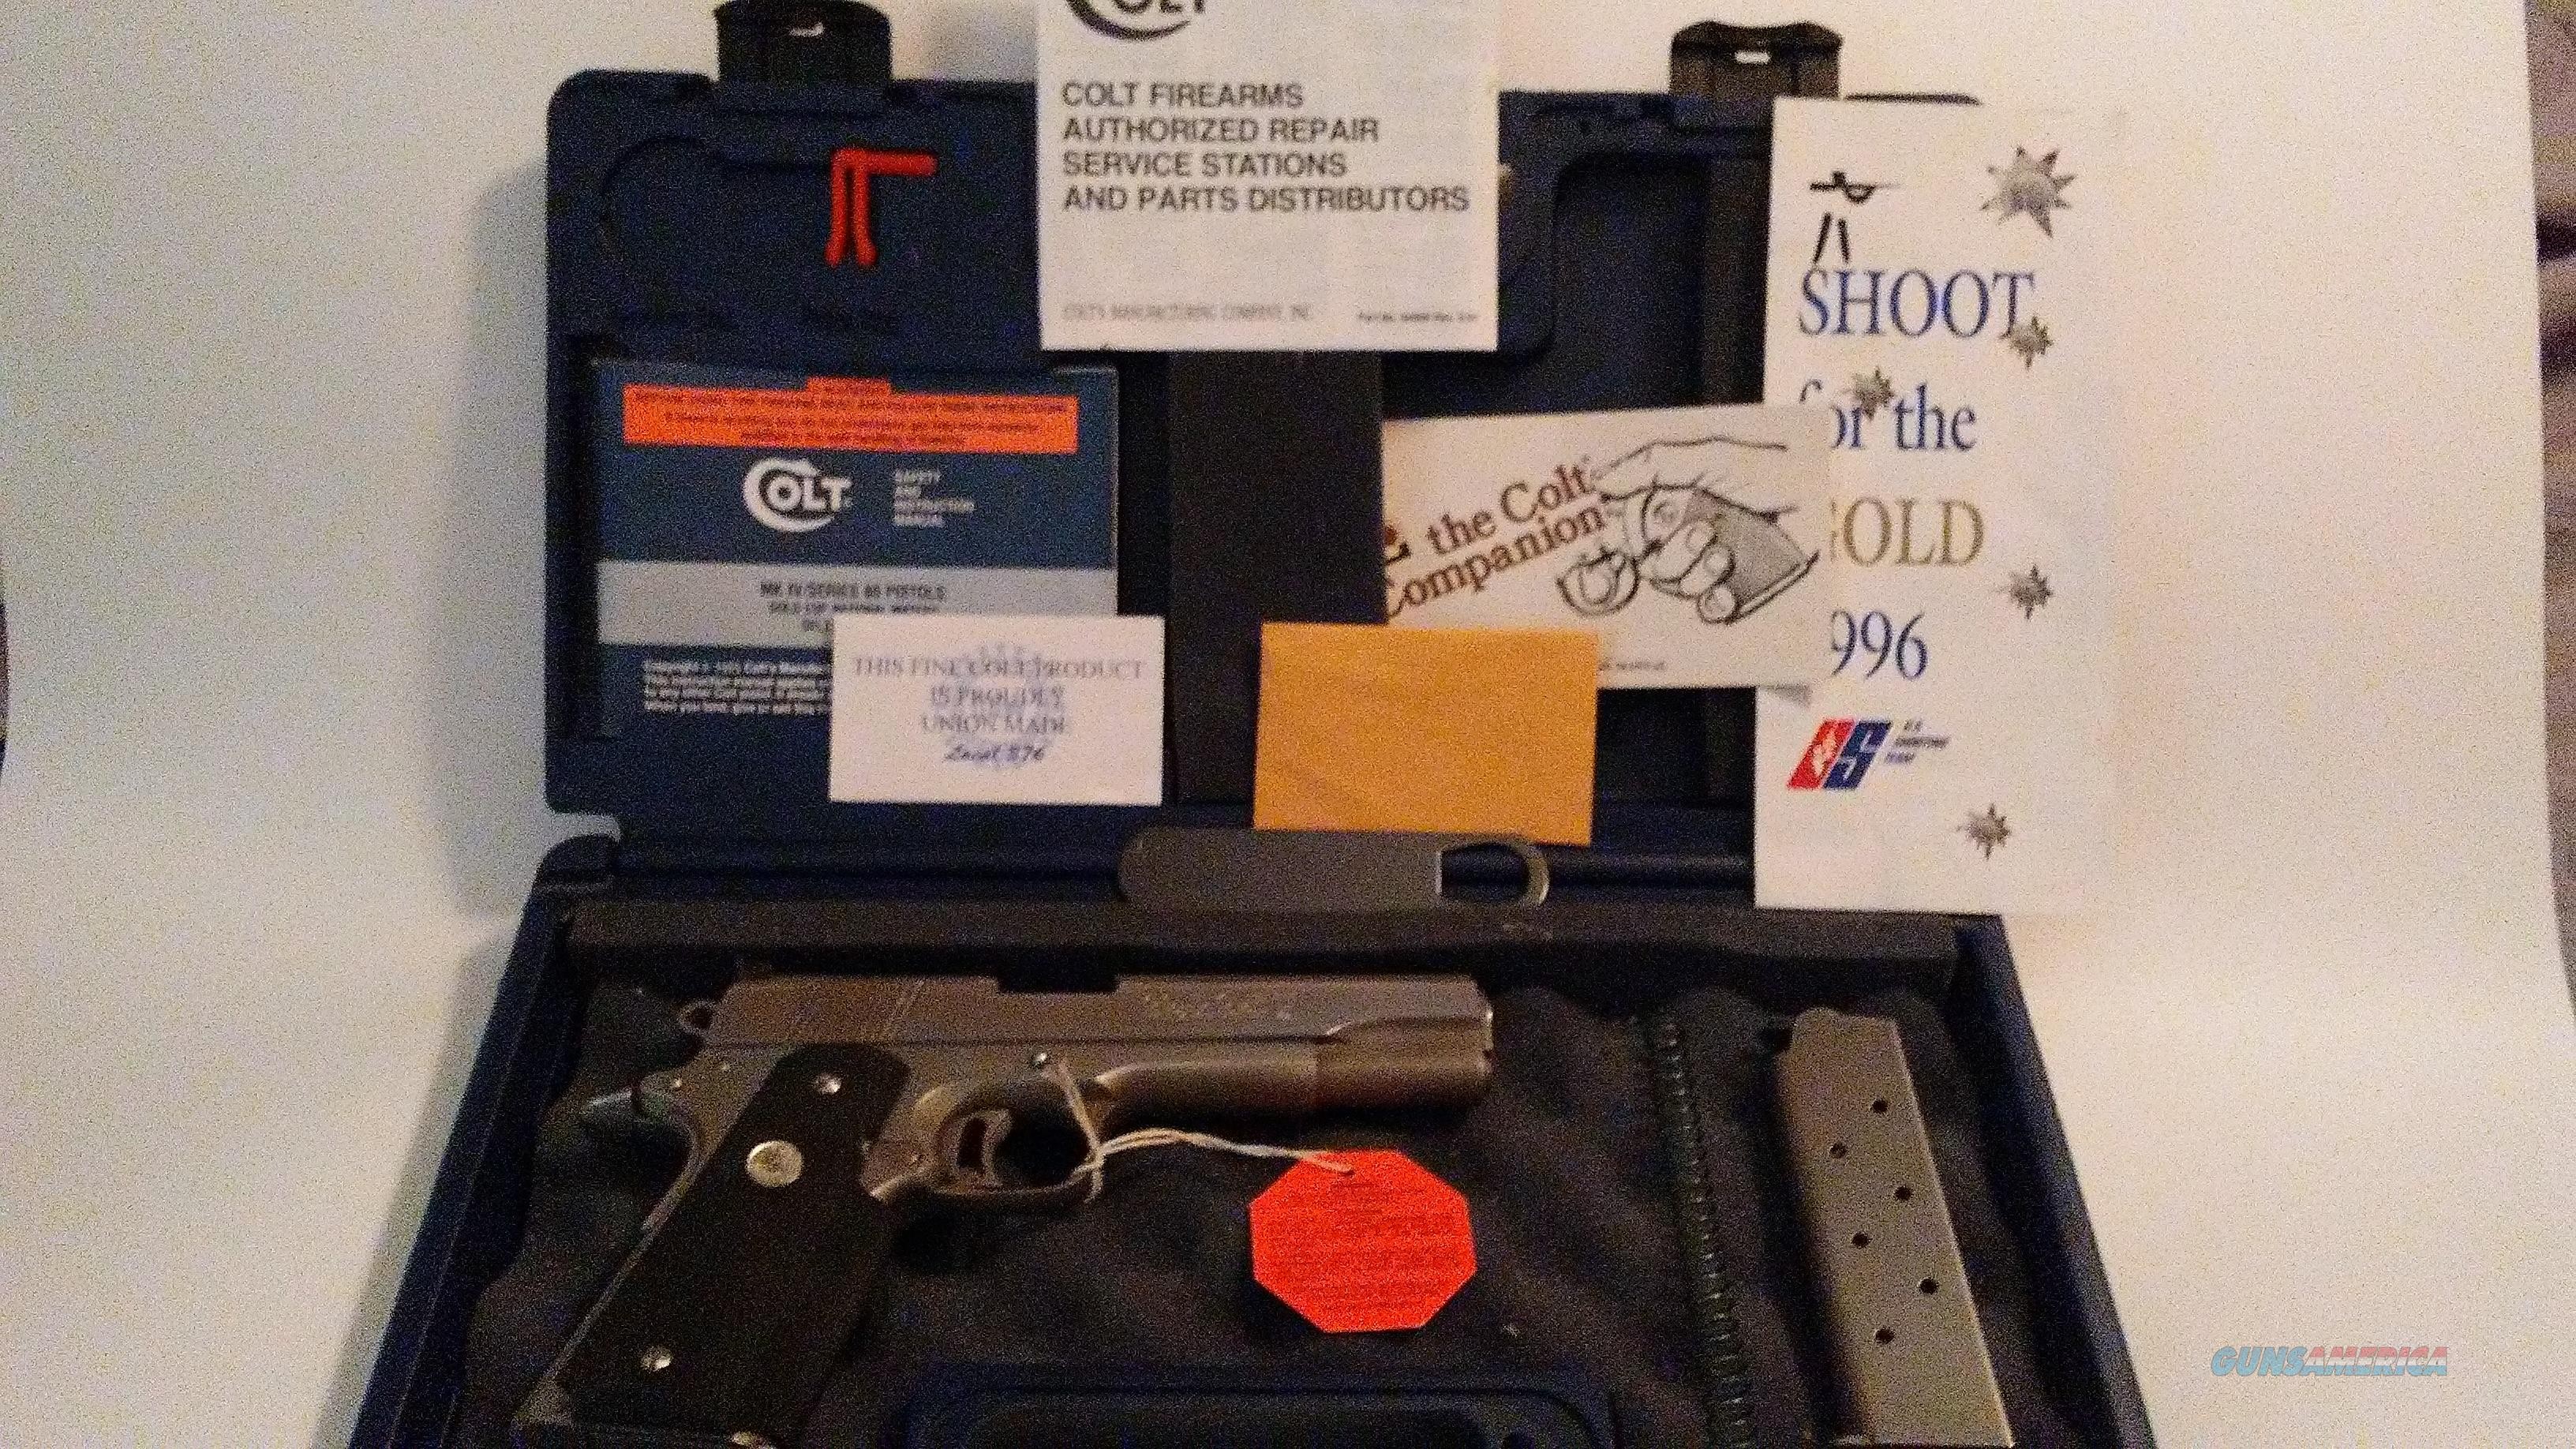 COLT GOLD CUP NATIONAL MATCH SERIES 80 45 ACP, STAINLESS STEEL  Guns > Pistols > Colt Automatic Pistols (1911 & Var)